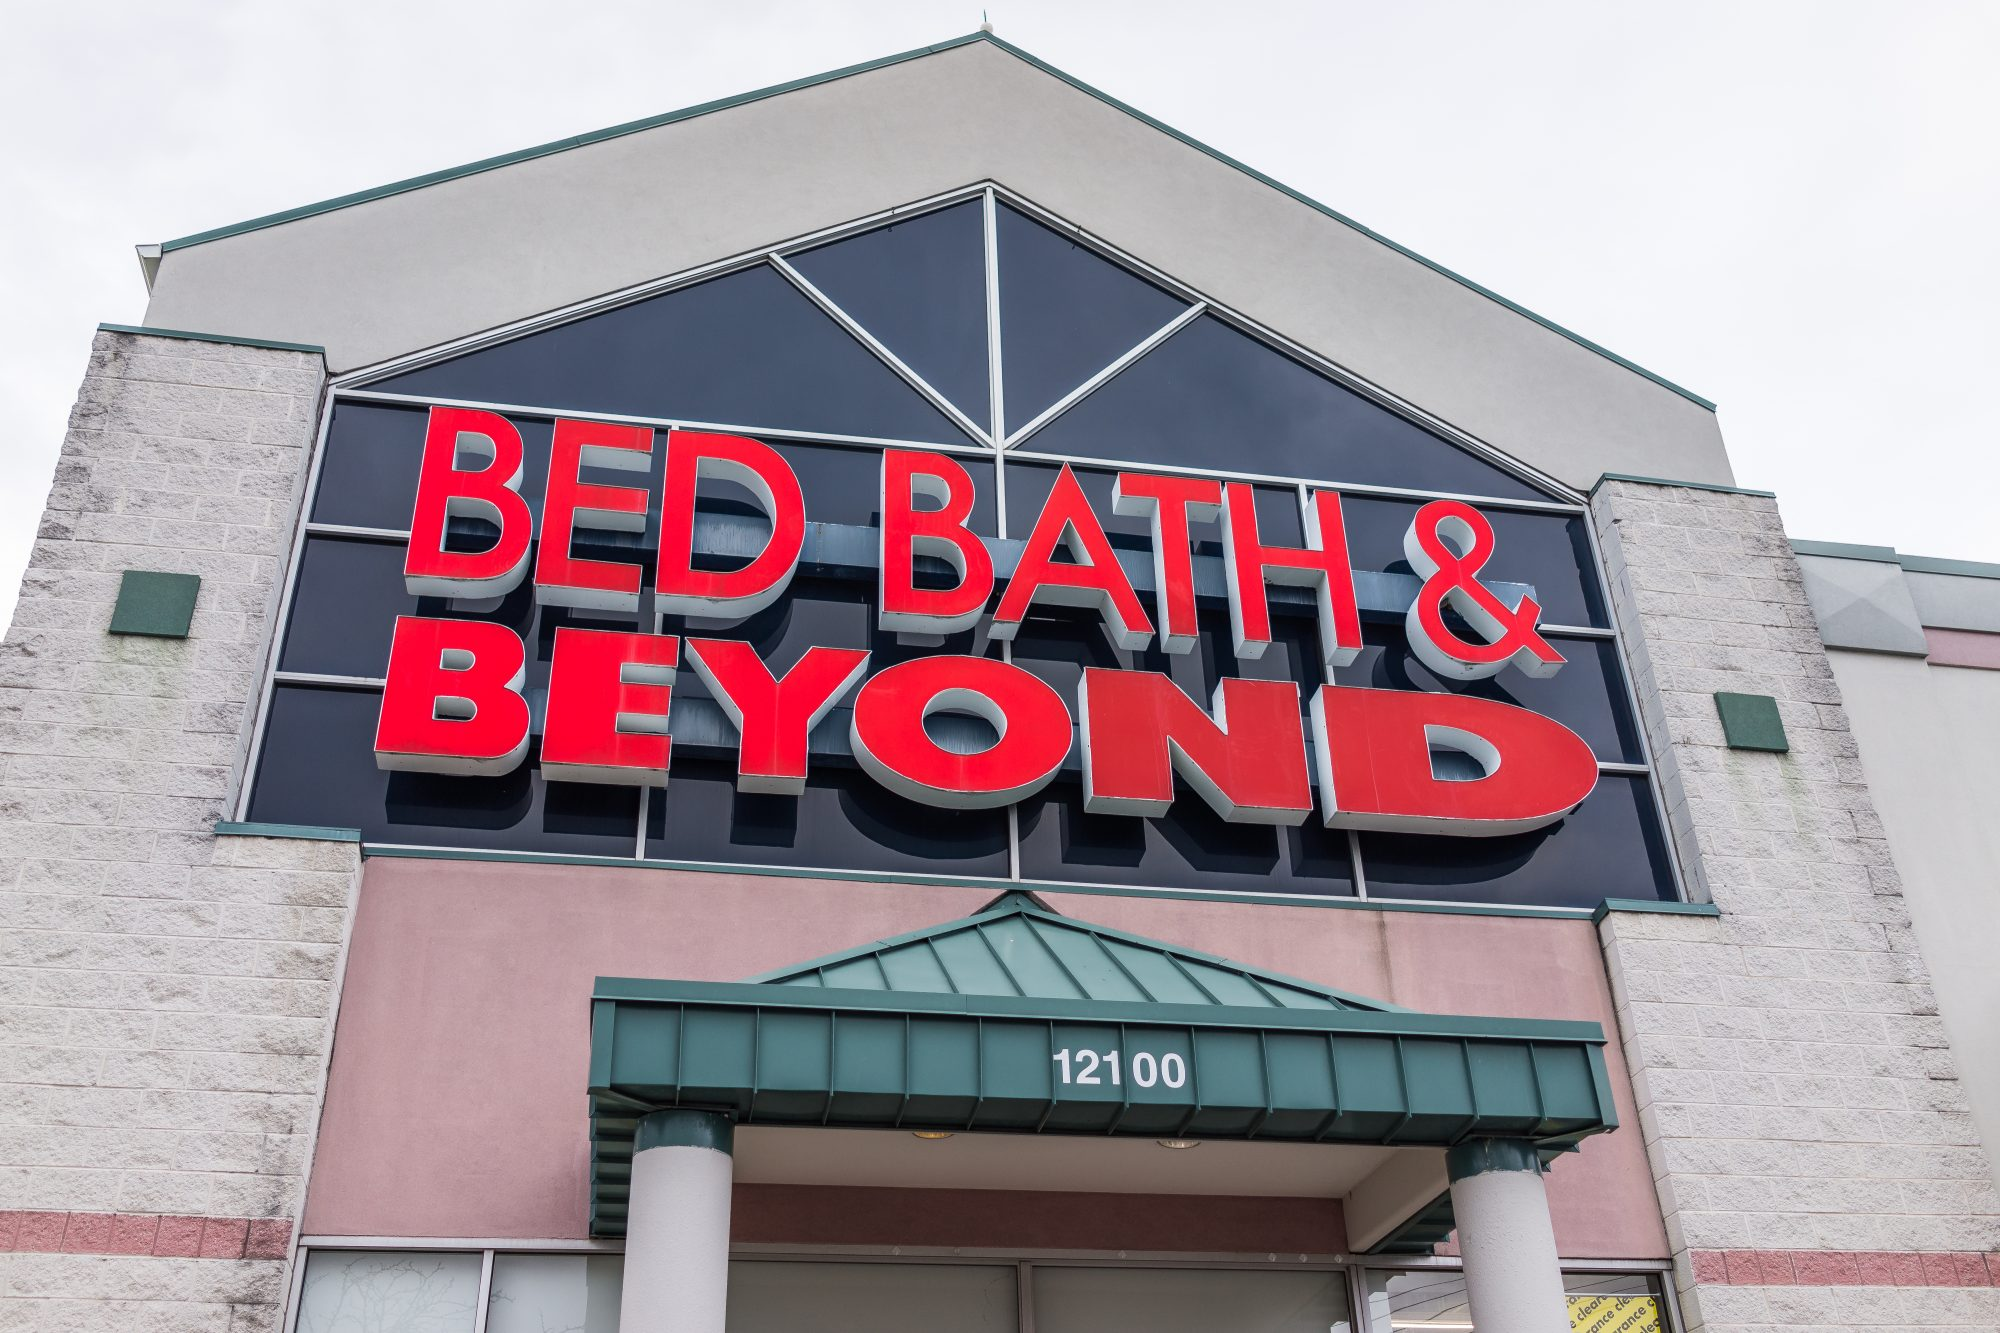 Bed Bath and Beyond store facade in red